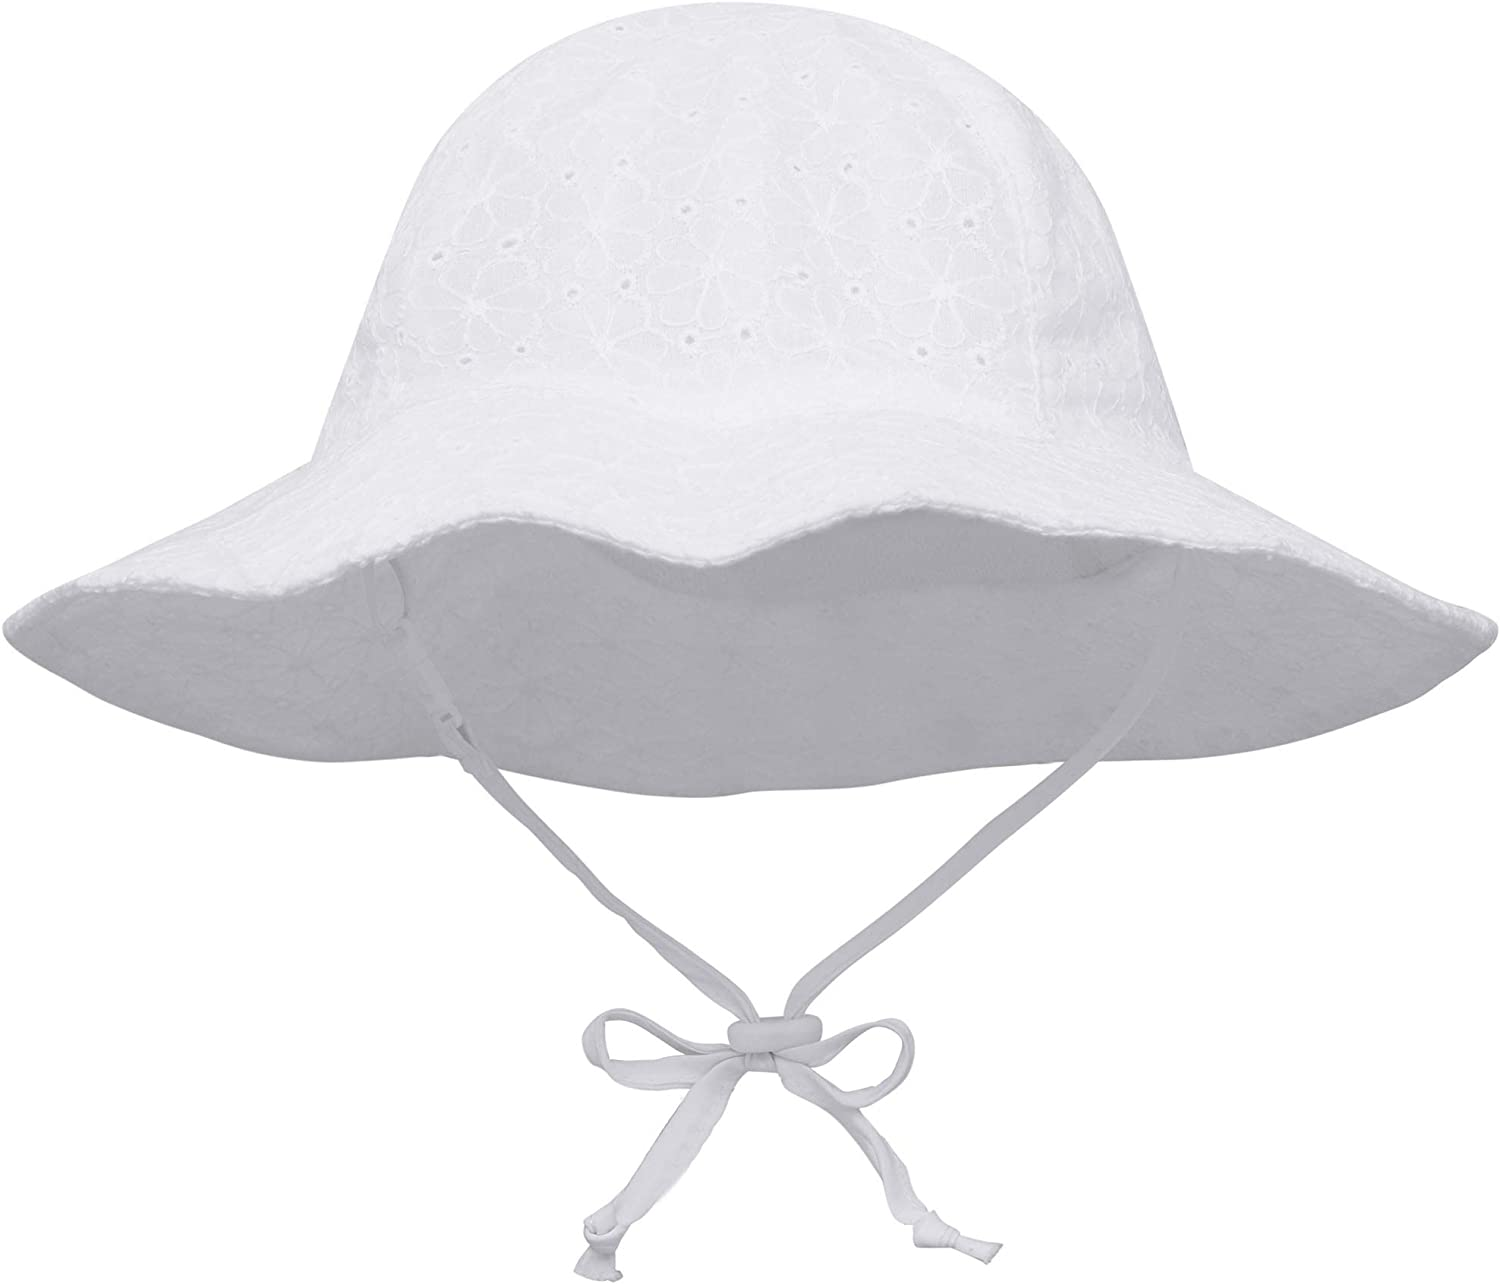 Max 70% OFF SimpliKids UPF Max 67% OFF 50+ UV Ray Sun Protection Hat Brim Wide Baby